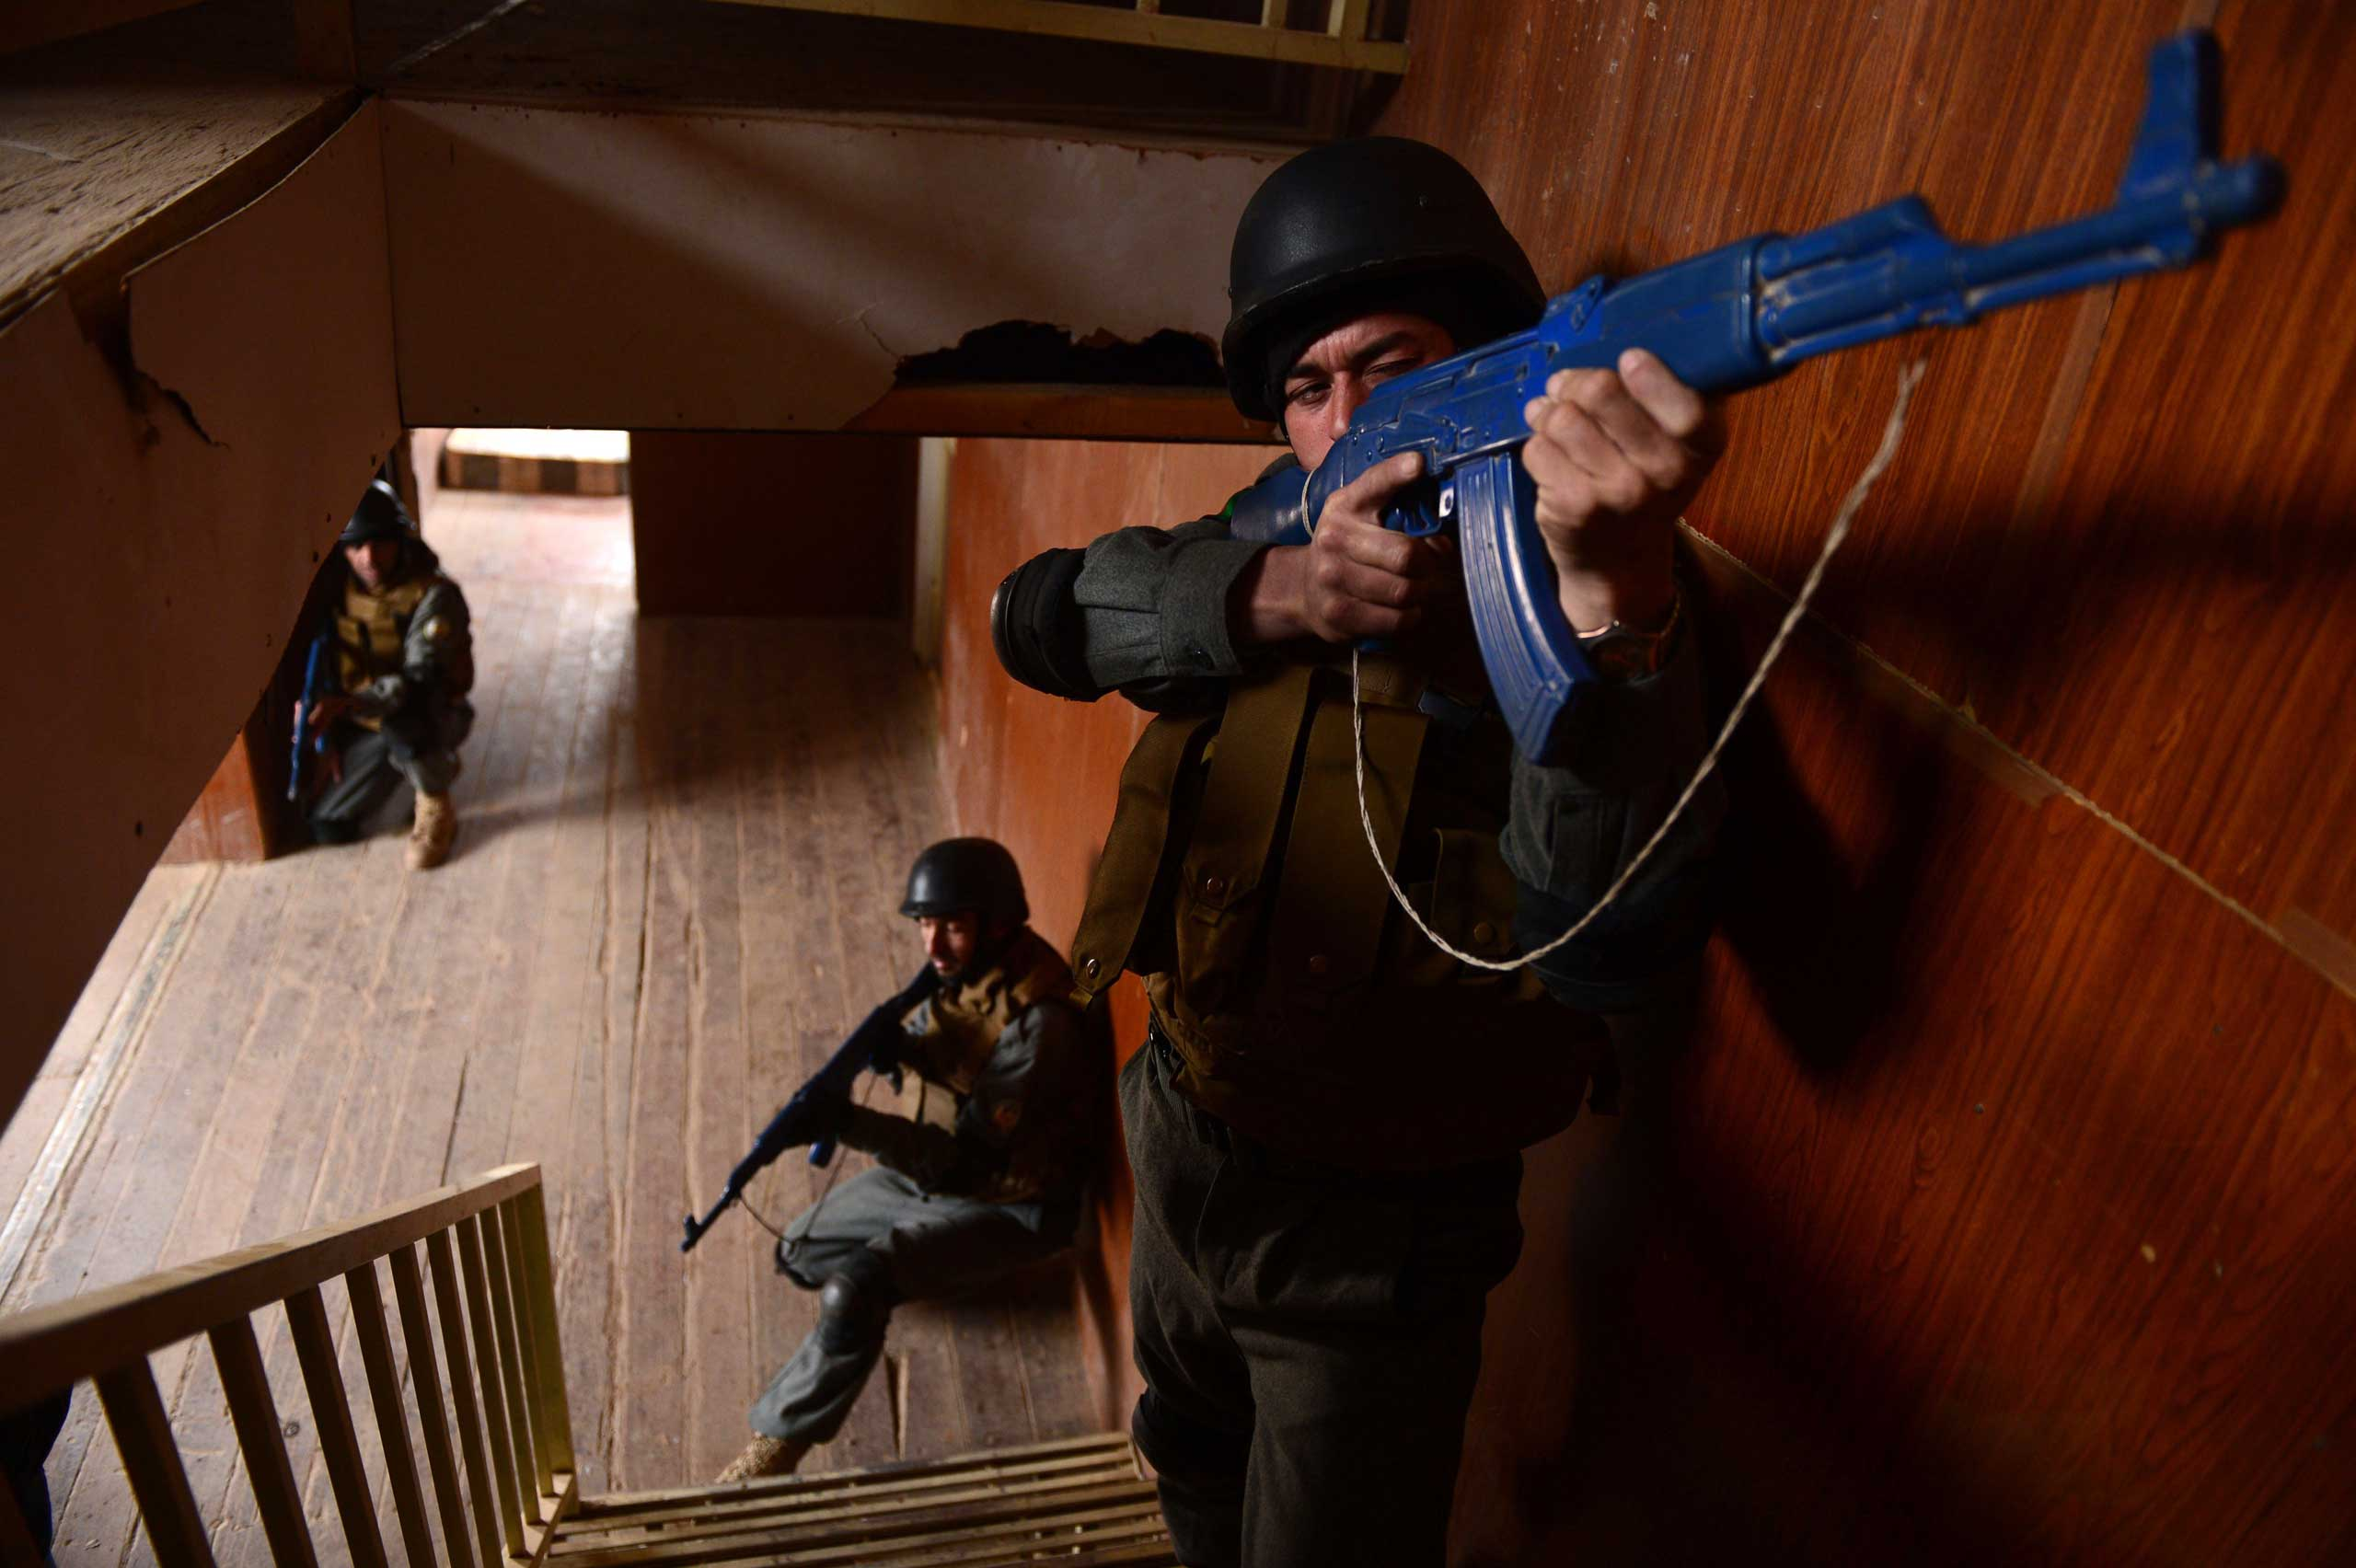 Jan. 27, 2015. Afghan policemen perform a drill during exercises at a police training centre in Herat. An estimated 17,000 foreign soldiers will stay on to assist the local police and army, who face a major challenge as the international military presence declines.